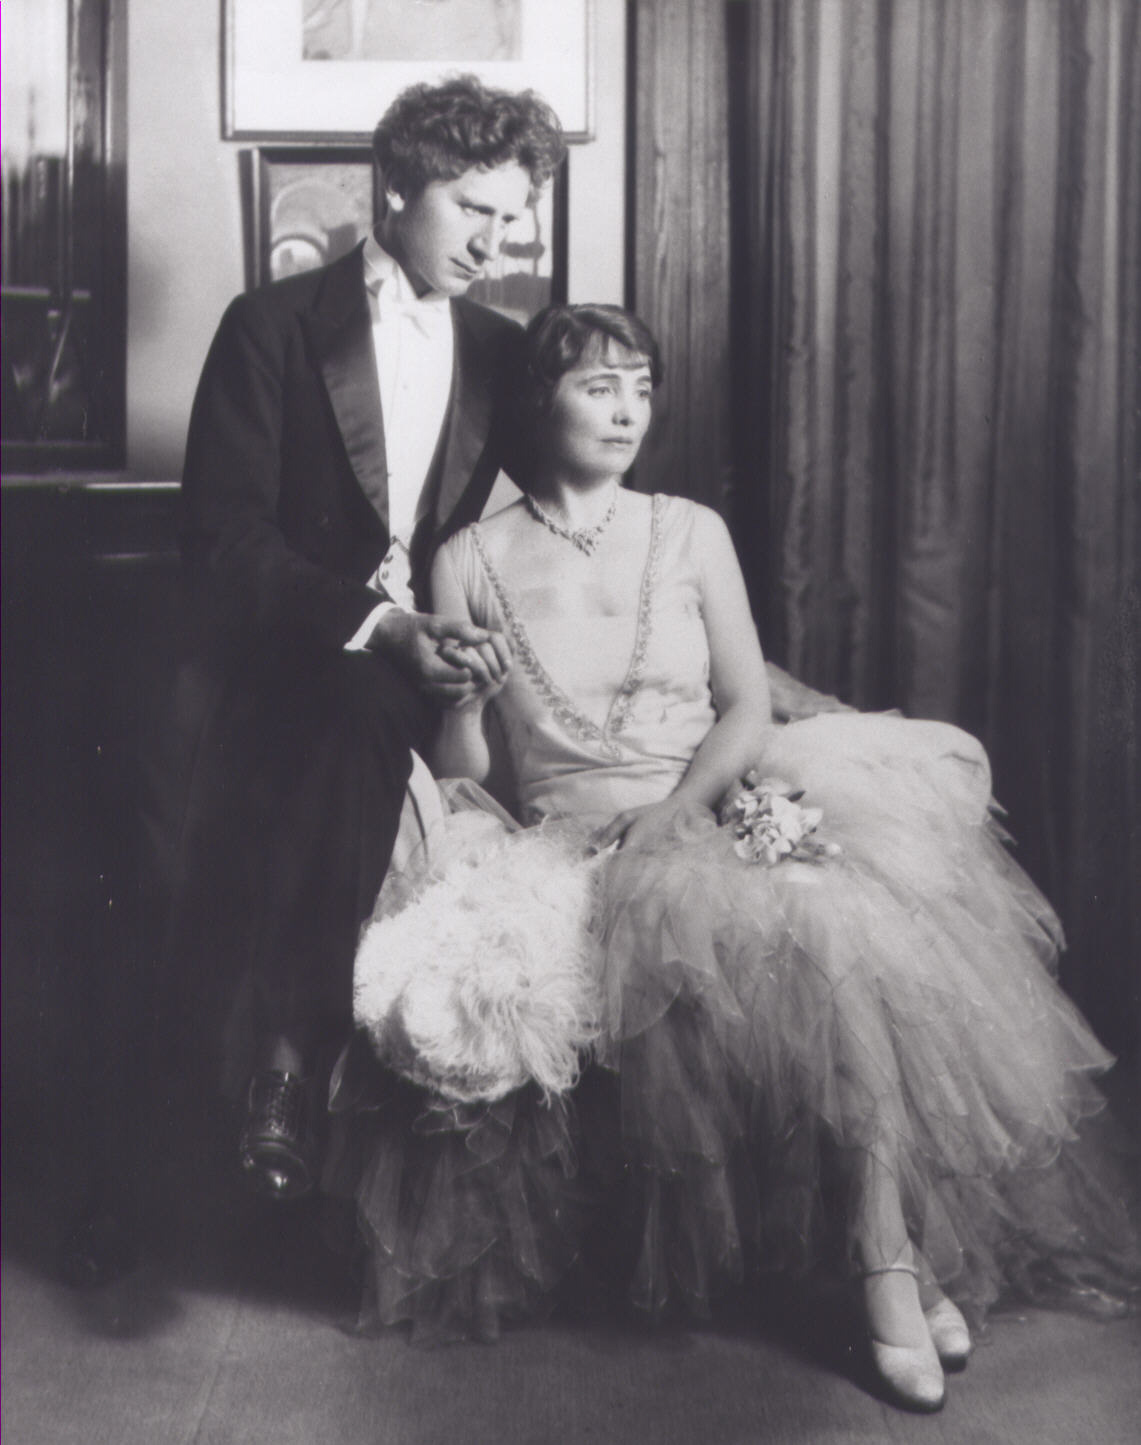 Composer and conductor Percy Grainger photographed with his bride Ella Viola Ström on their wedding day. They wed following a Los Angeles Philharmonic concert that Grainger guest conducted at the Hollywood Bowl. August 9, 1928. | Los Angeles Philharmonic